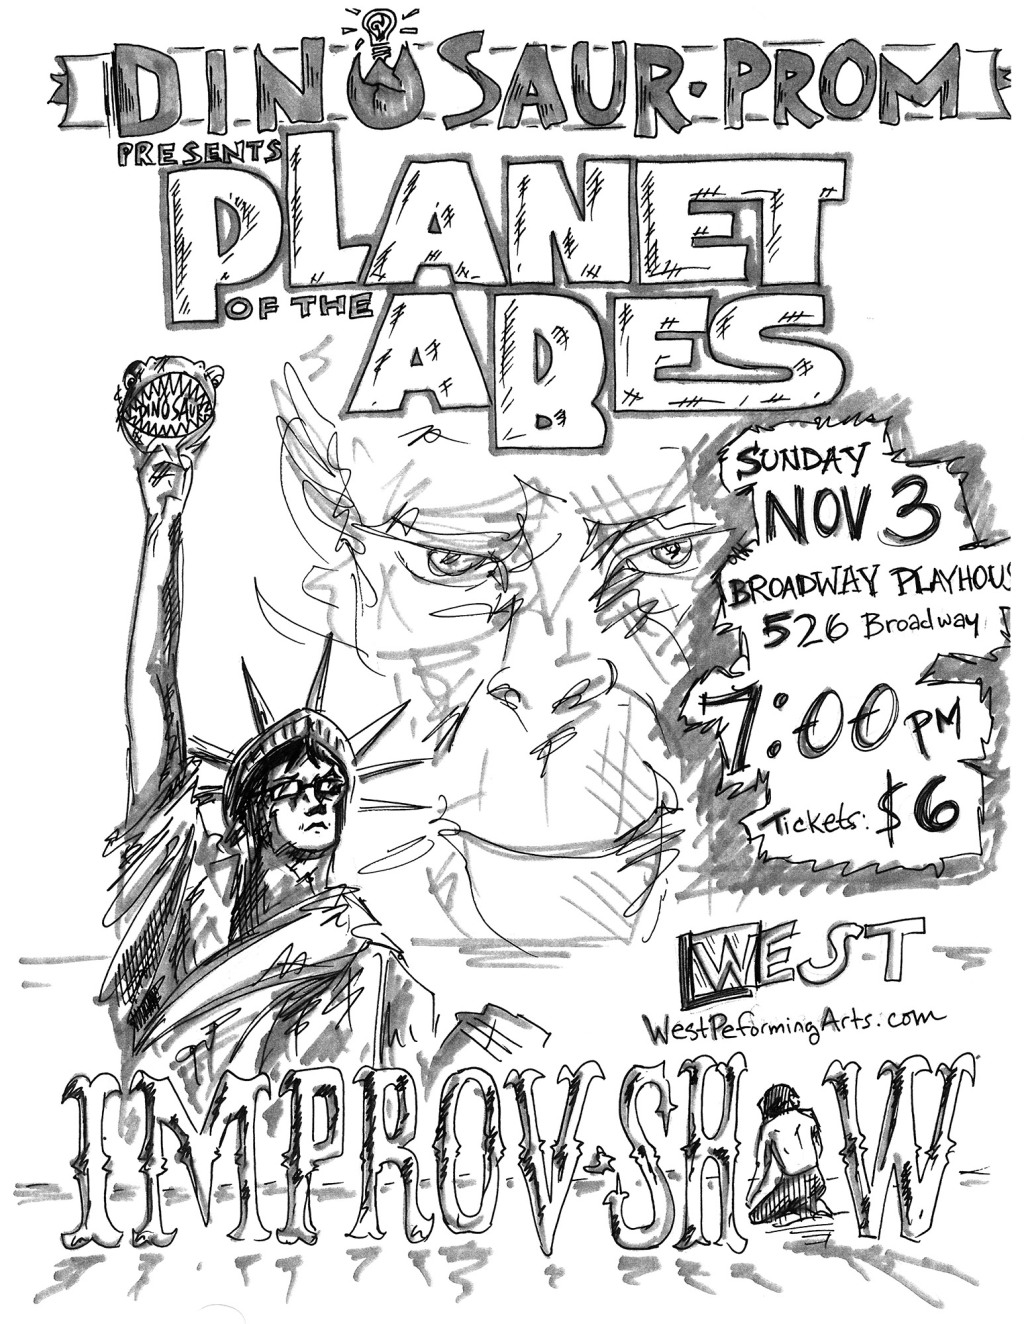 The flyer,  drawn by Hunter Wallraff, for the Dinosaur Prom Improv show.  Because the edge of the drawing was not reproduced on the flyer, I had to try to add it in by hand to get something usable for the titling of the video.  I did not correct the error in the URL for westperformingarts.com